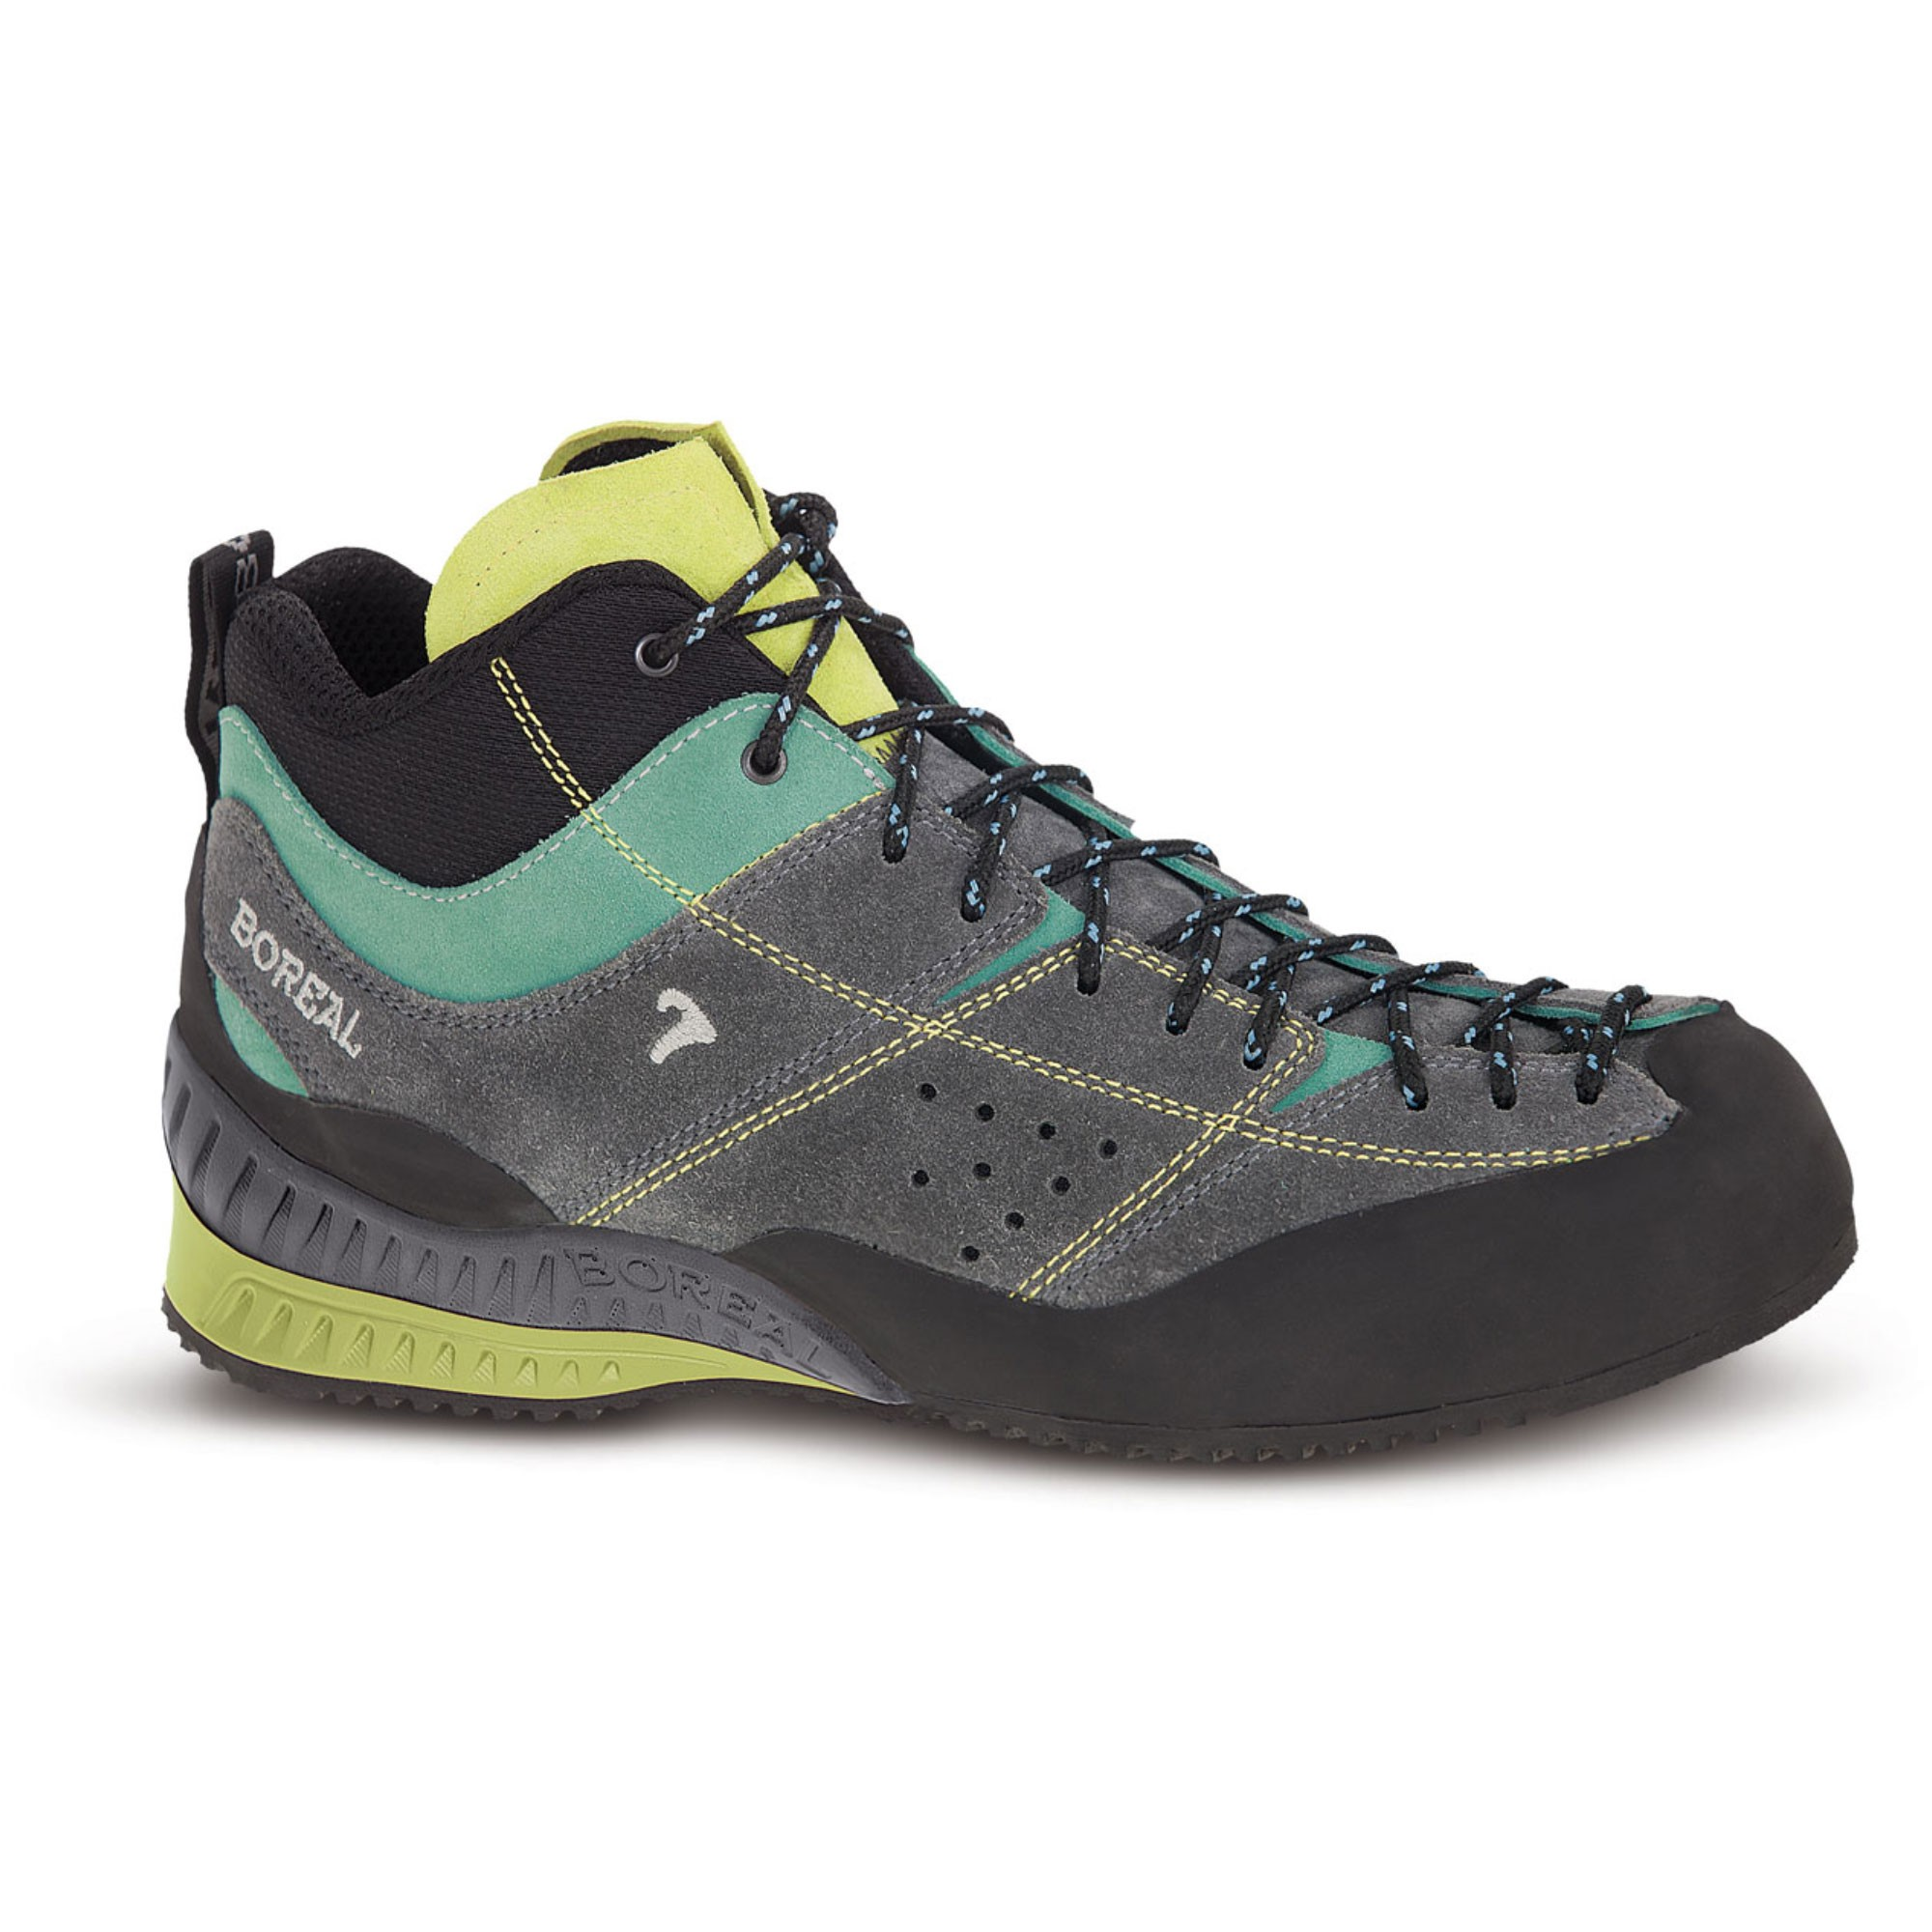 BOREAL - Flyers Mid Women's Approach Shoes